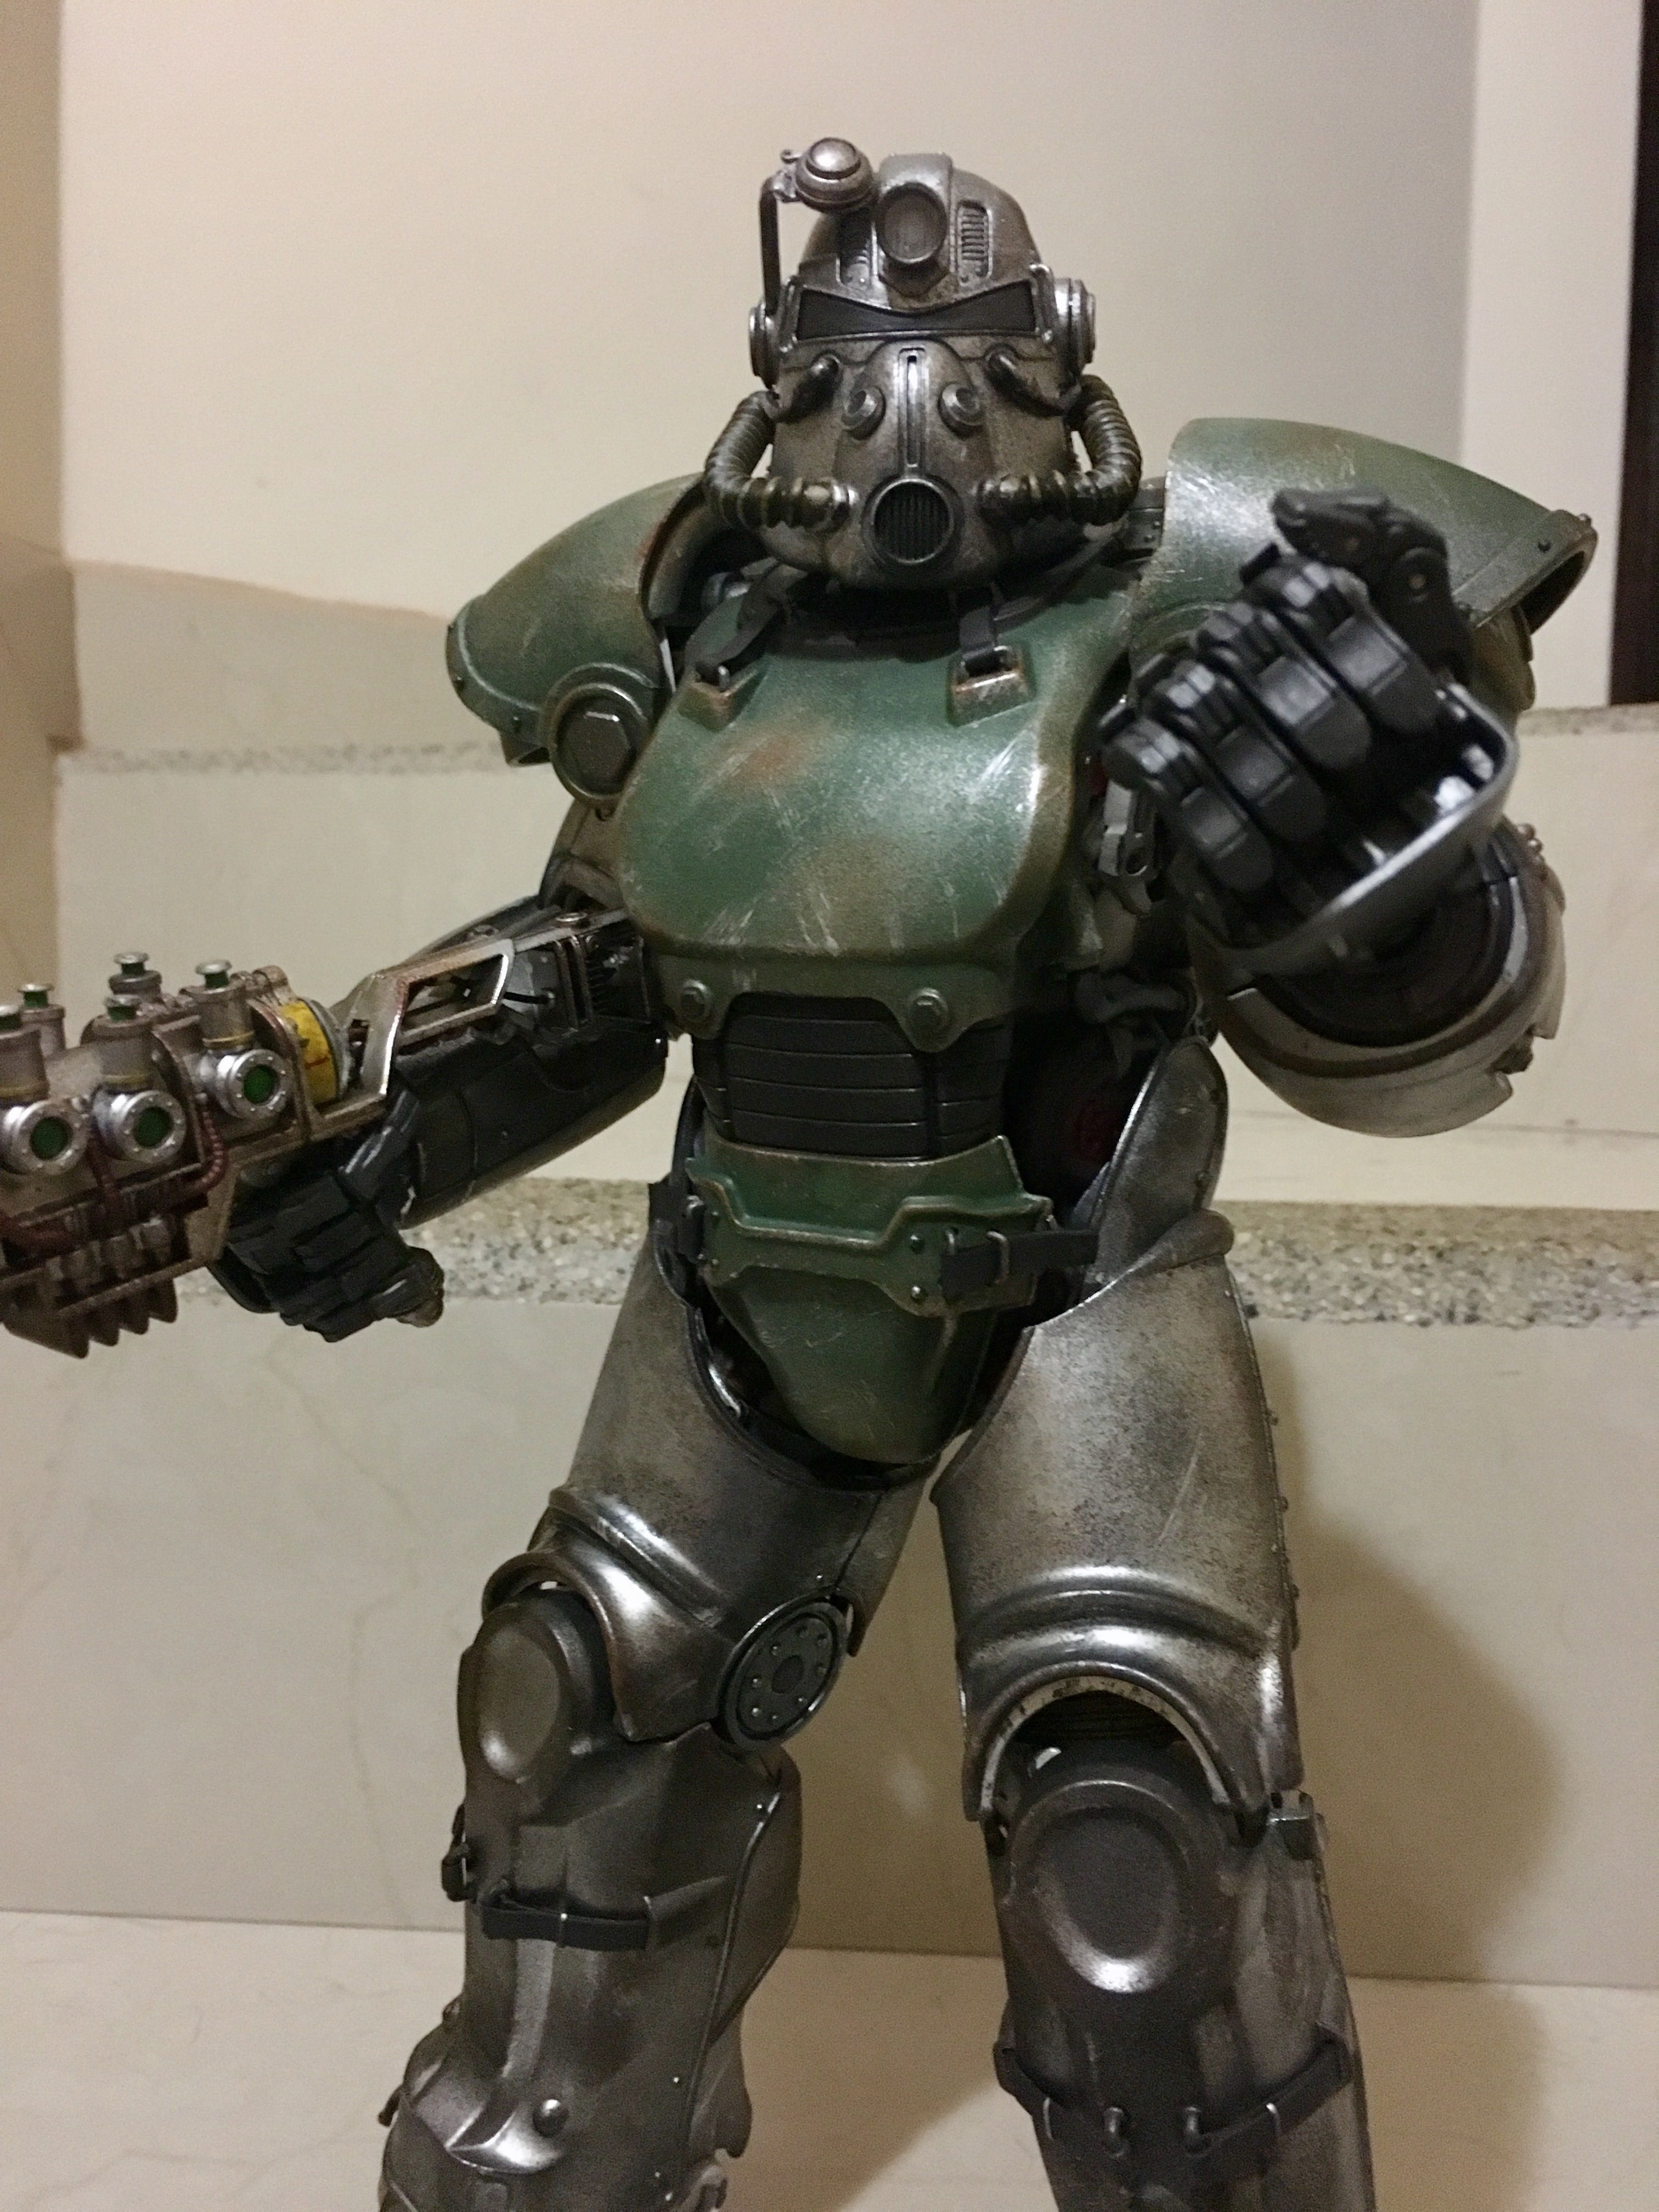 T51B the most iconic Fallout helmet was recreated